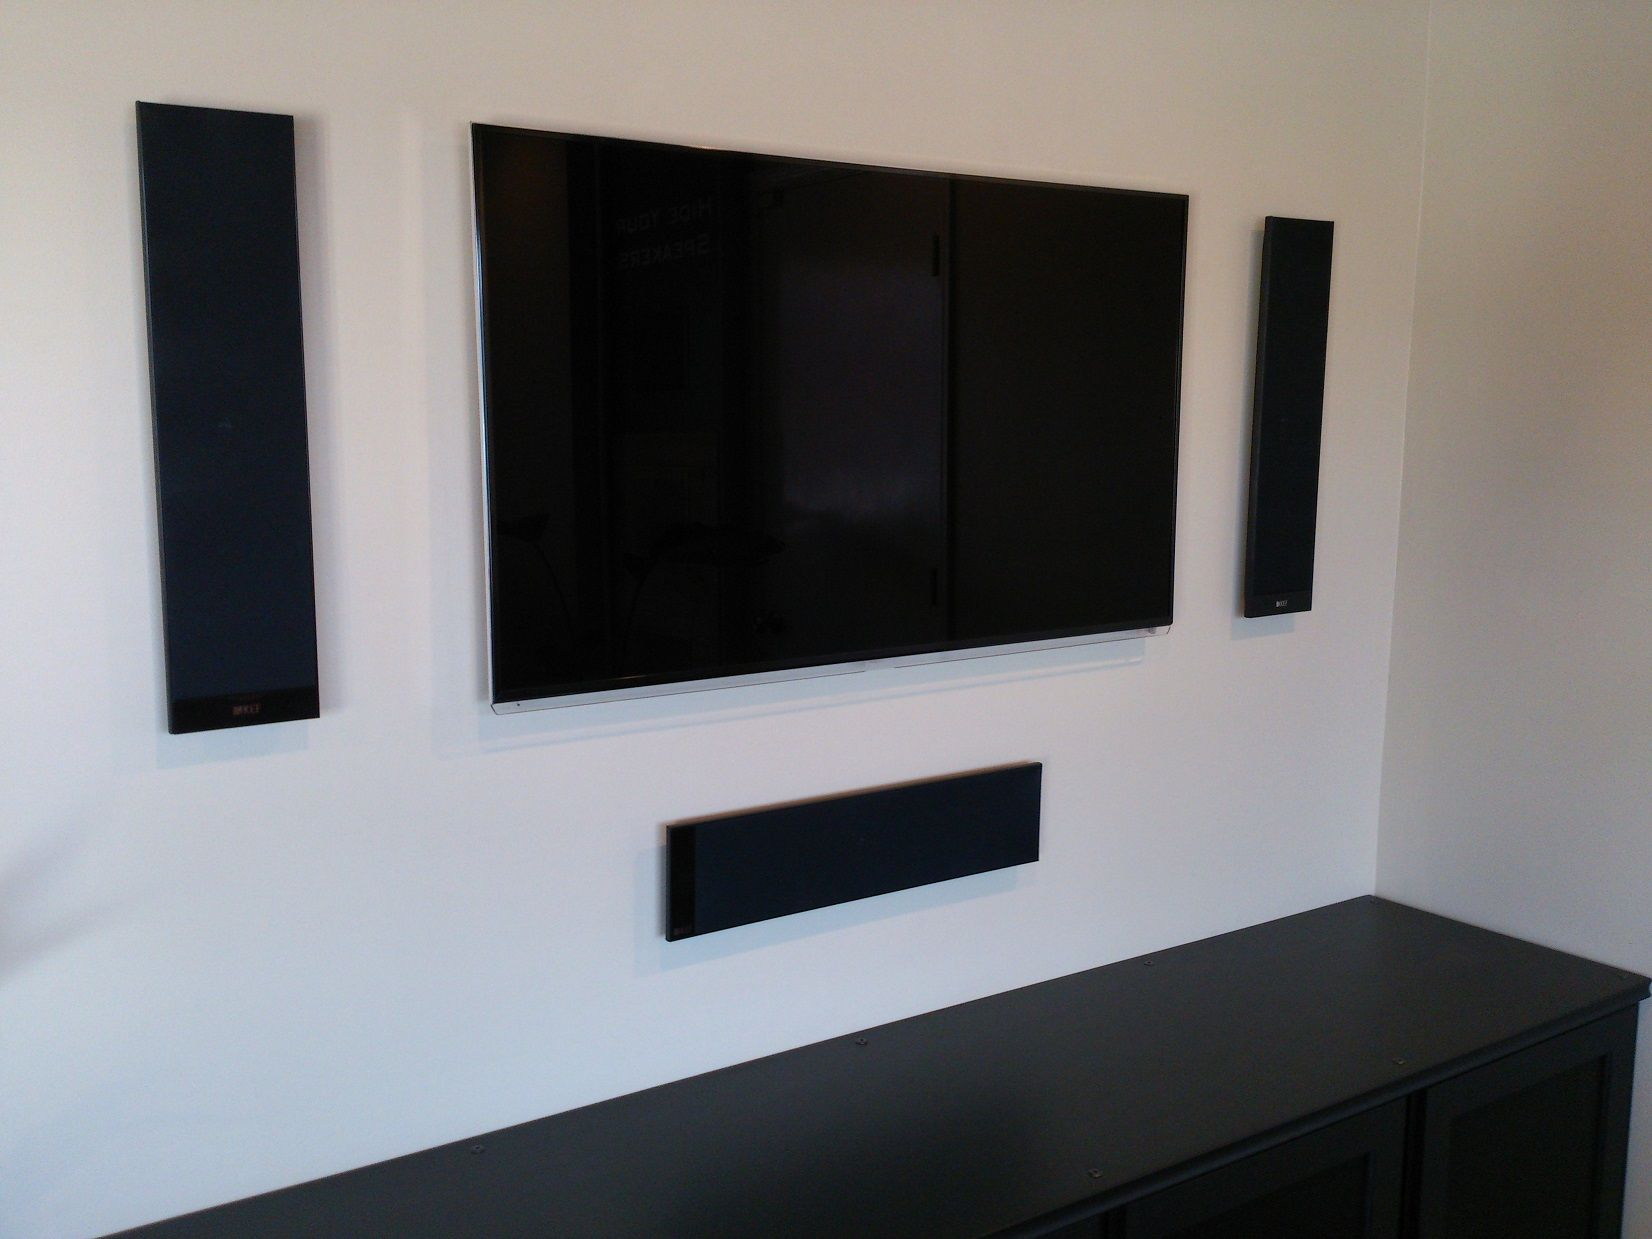 living room sound system. Great sound without bulky speakers is possible with the T305 KEF 5 1  surround system